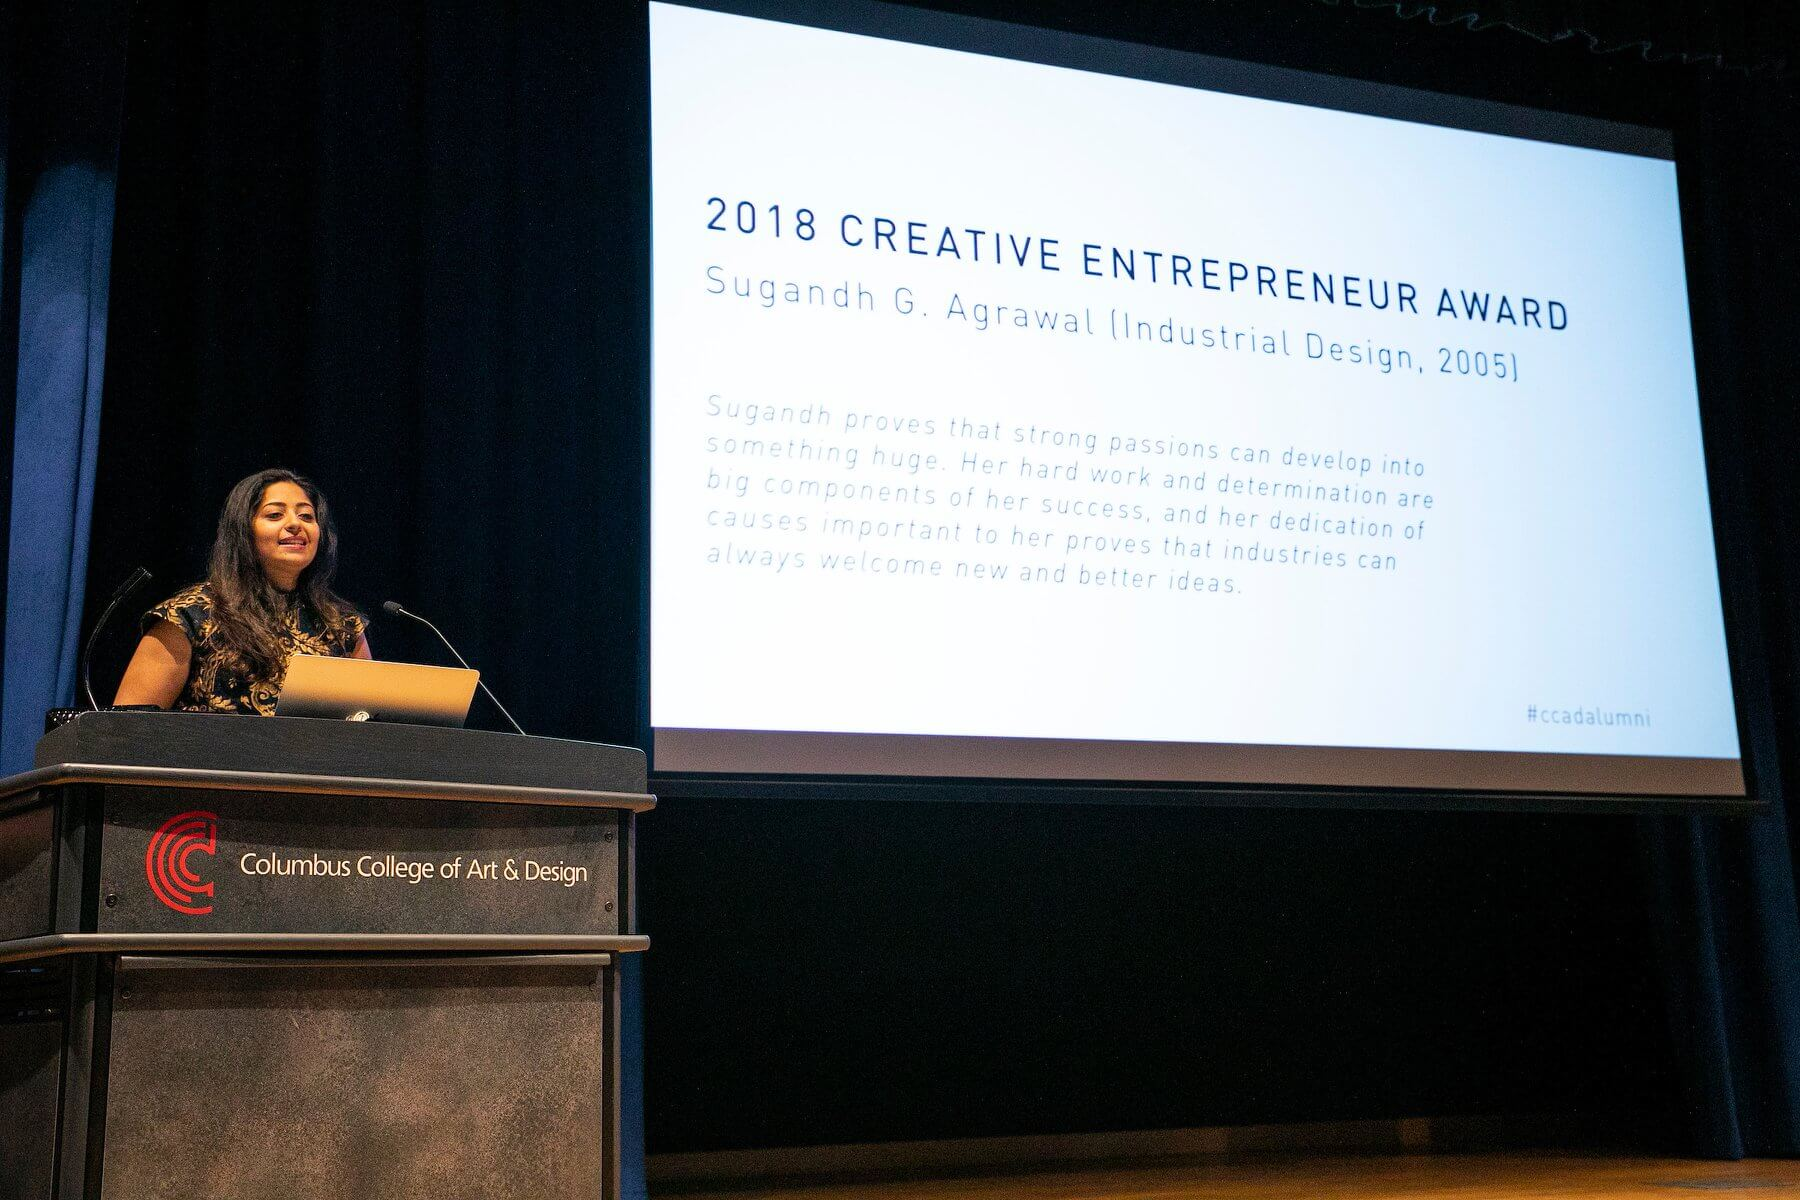 Creative Entrepreneur Award